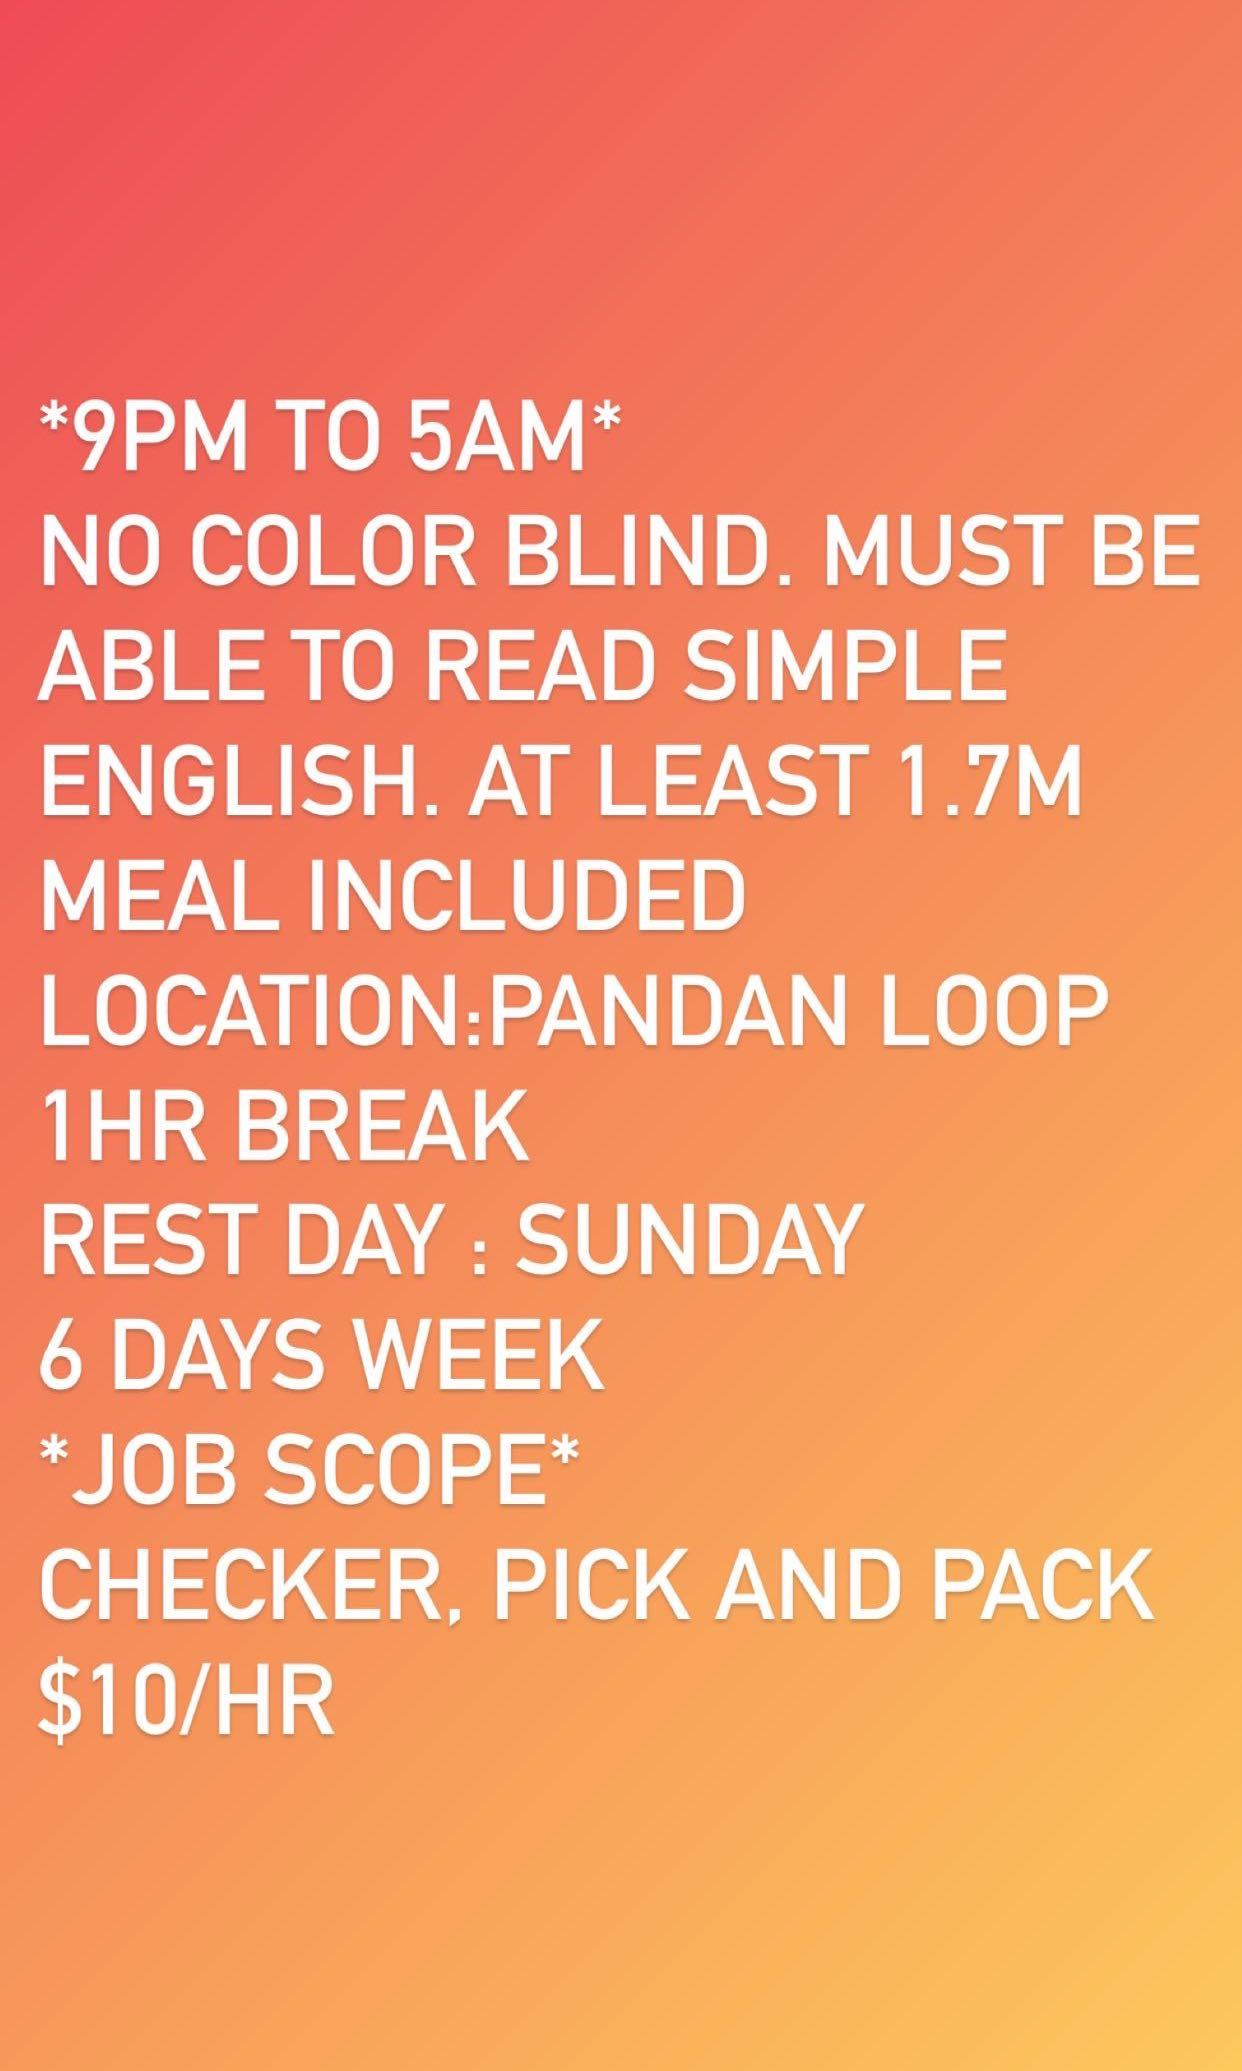 Job: checker pick and pack